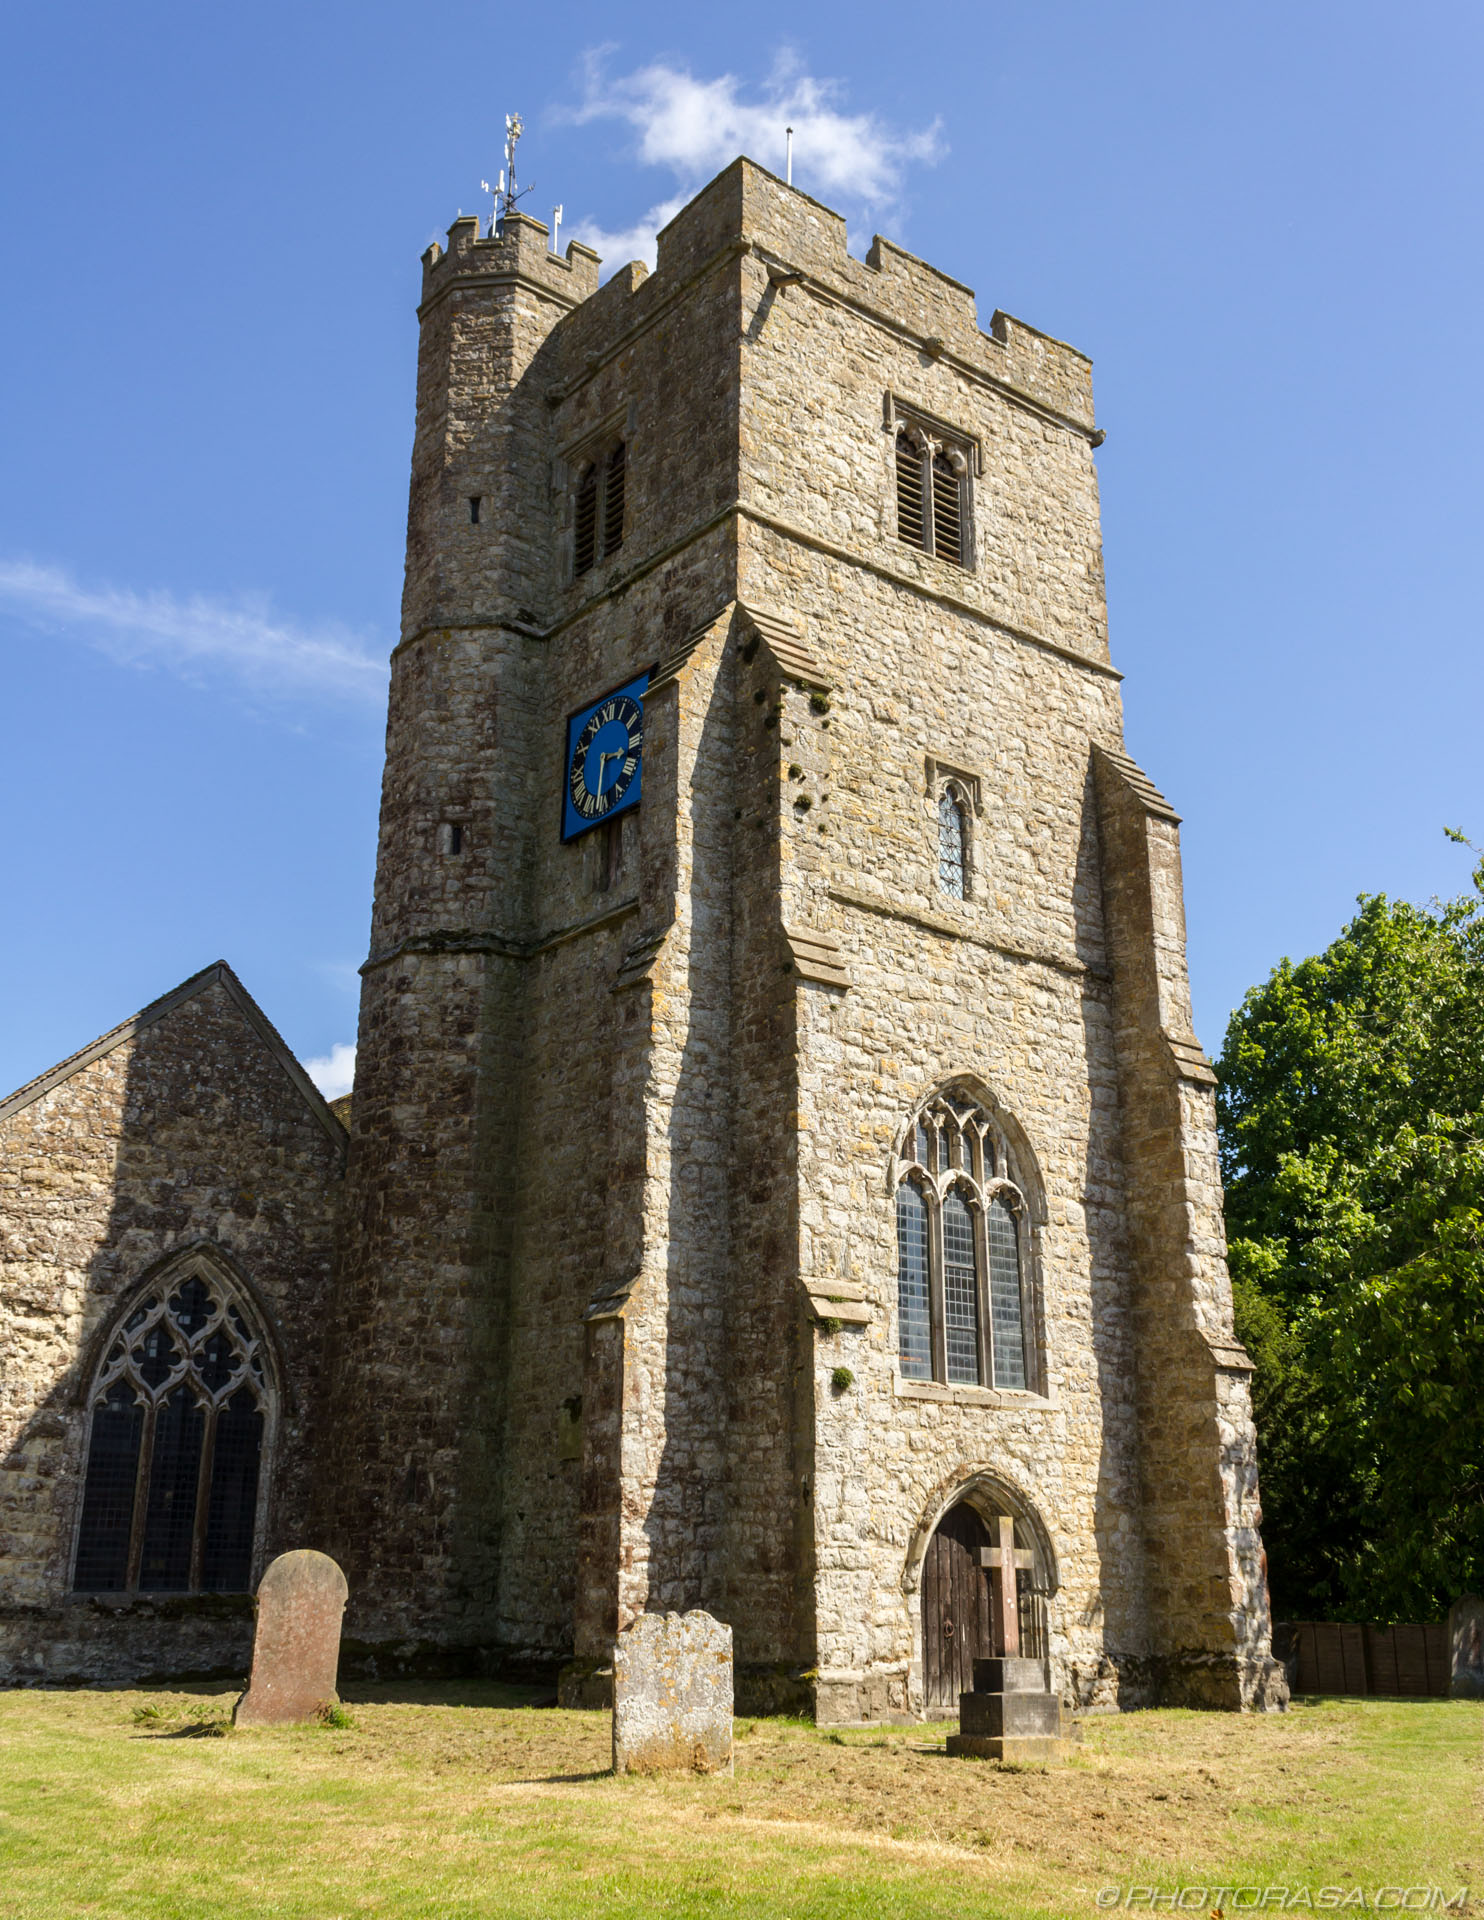 http://photorasa.com/st-marys-church-in-lenham/st-marys-church-clock-tower/